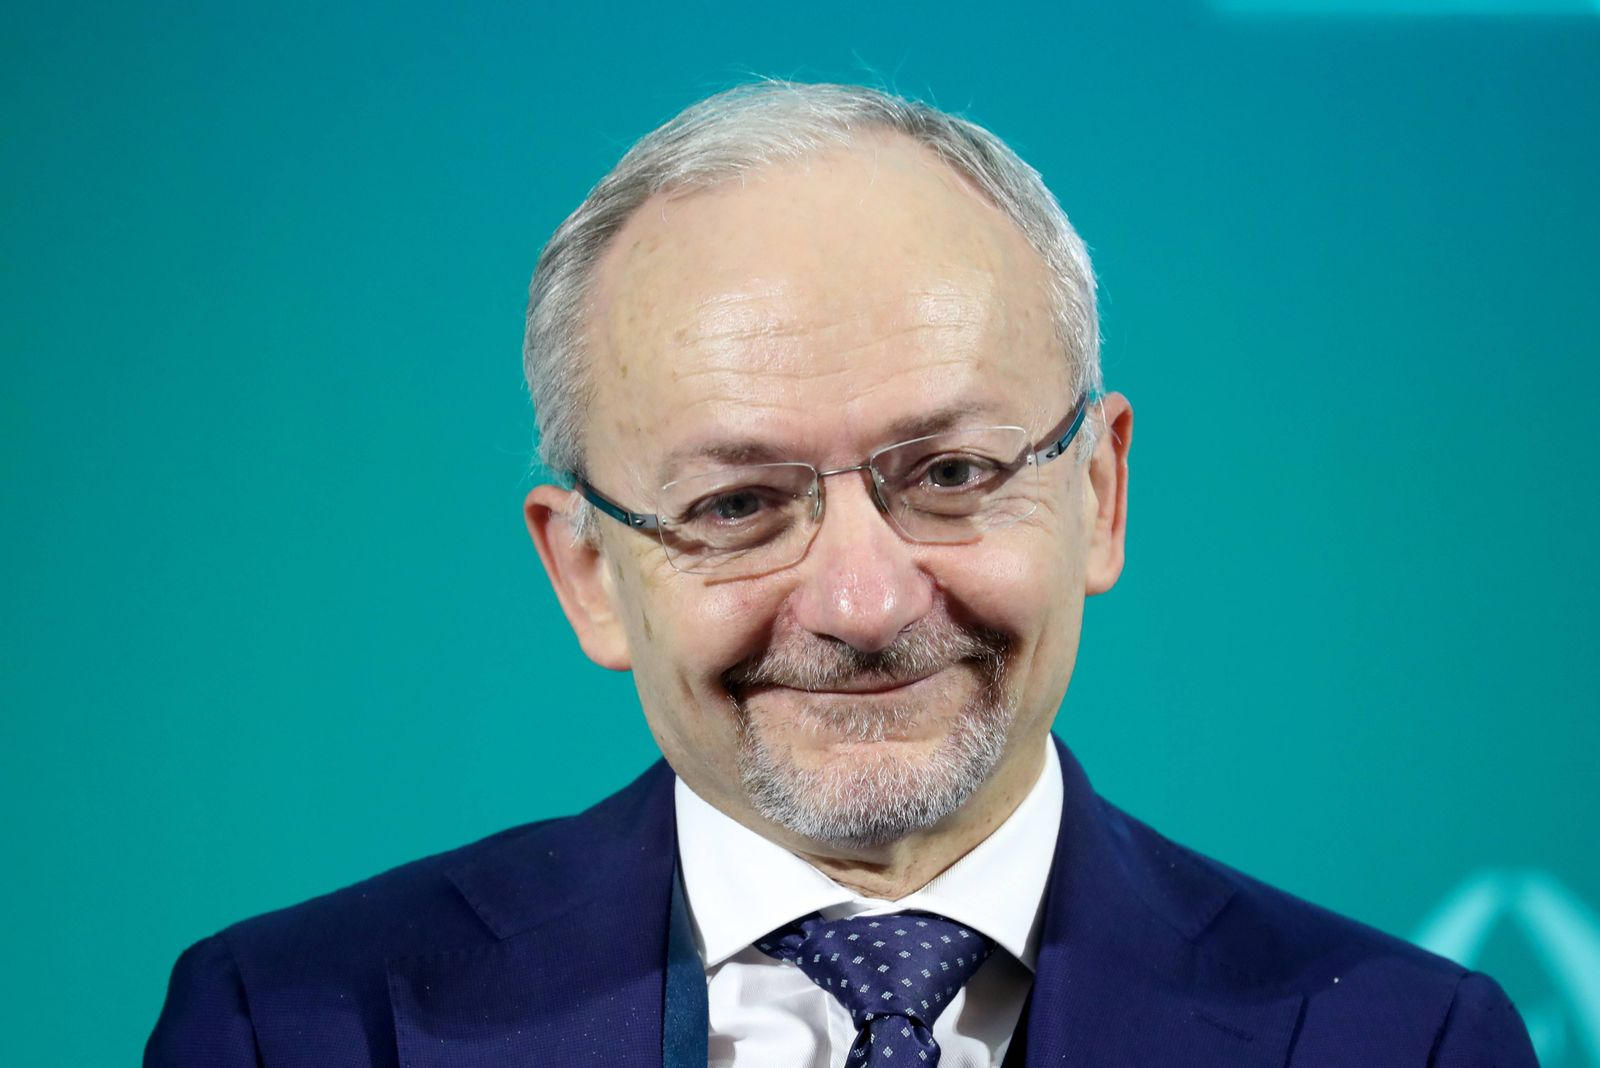 ST PETERSBURG RUSSIA JULY 4 2019 Claudio Borio Head of the Monetary and Economic Department a